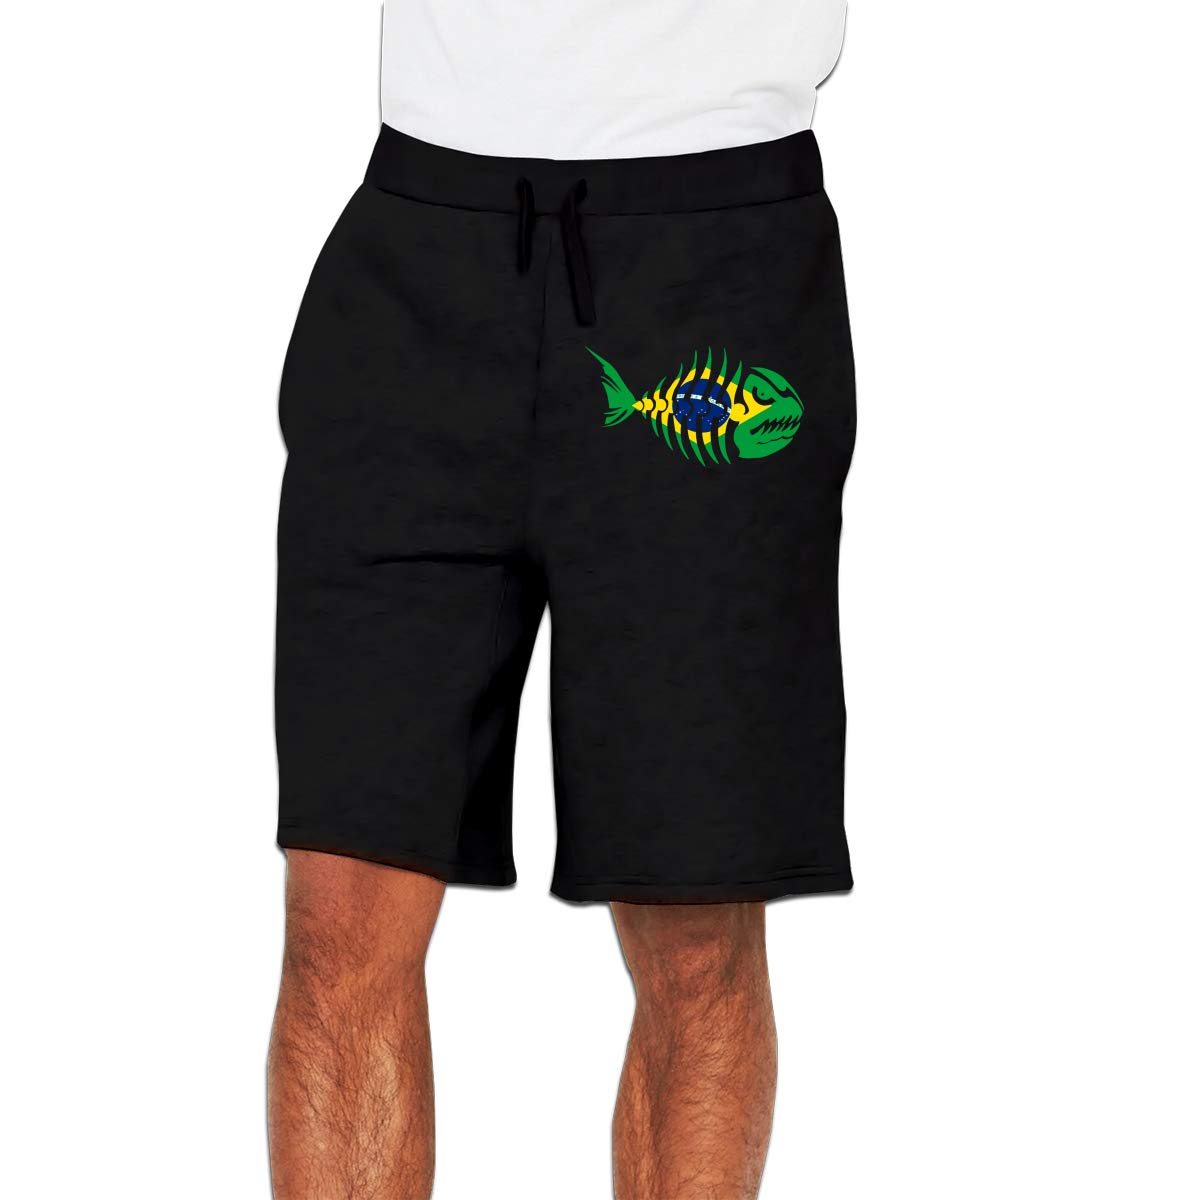 YDXC2FY Mens Shorts Club Shorts with Elastic Waist Drawstring